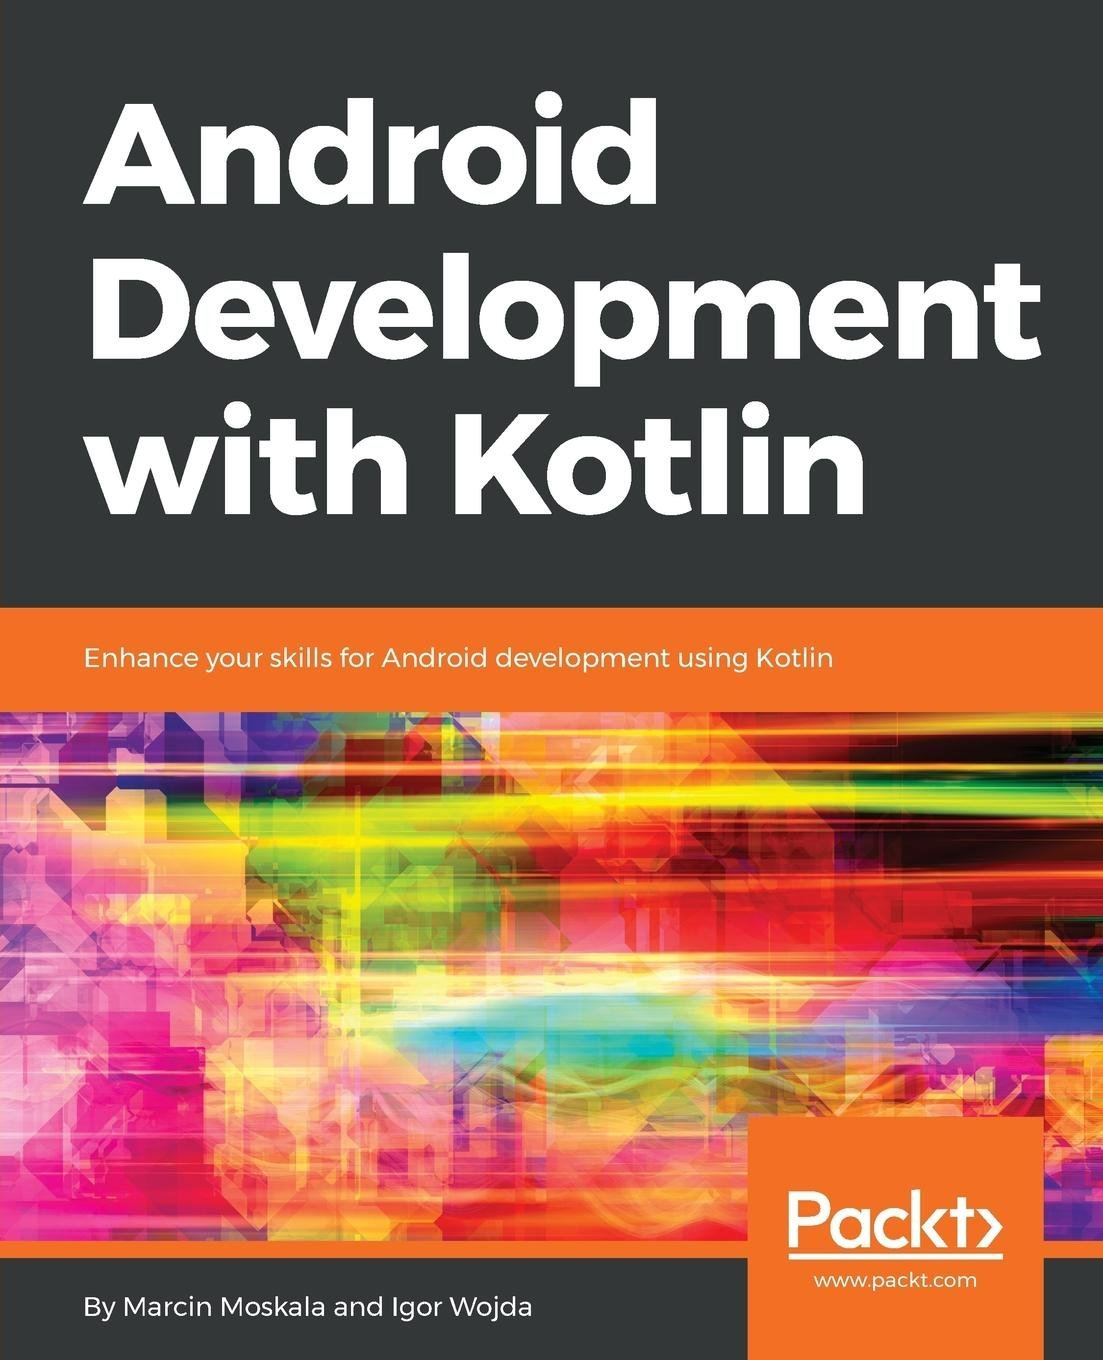 Android Development with Kotlin: Enhance your skills for